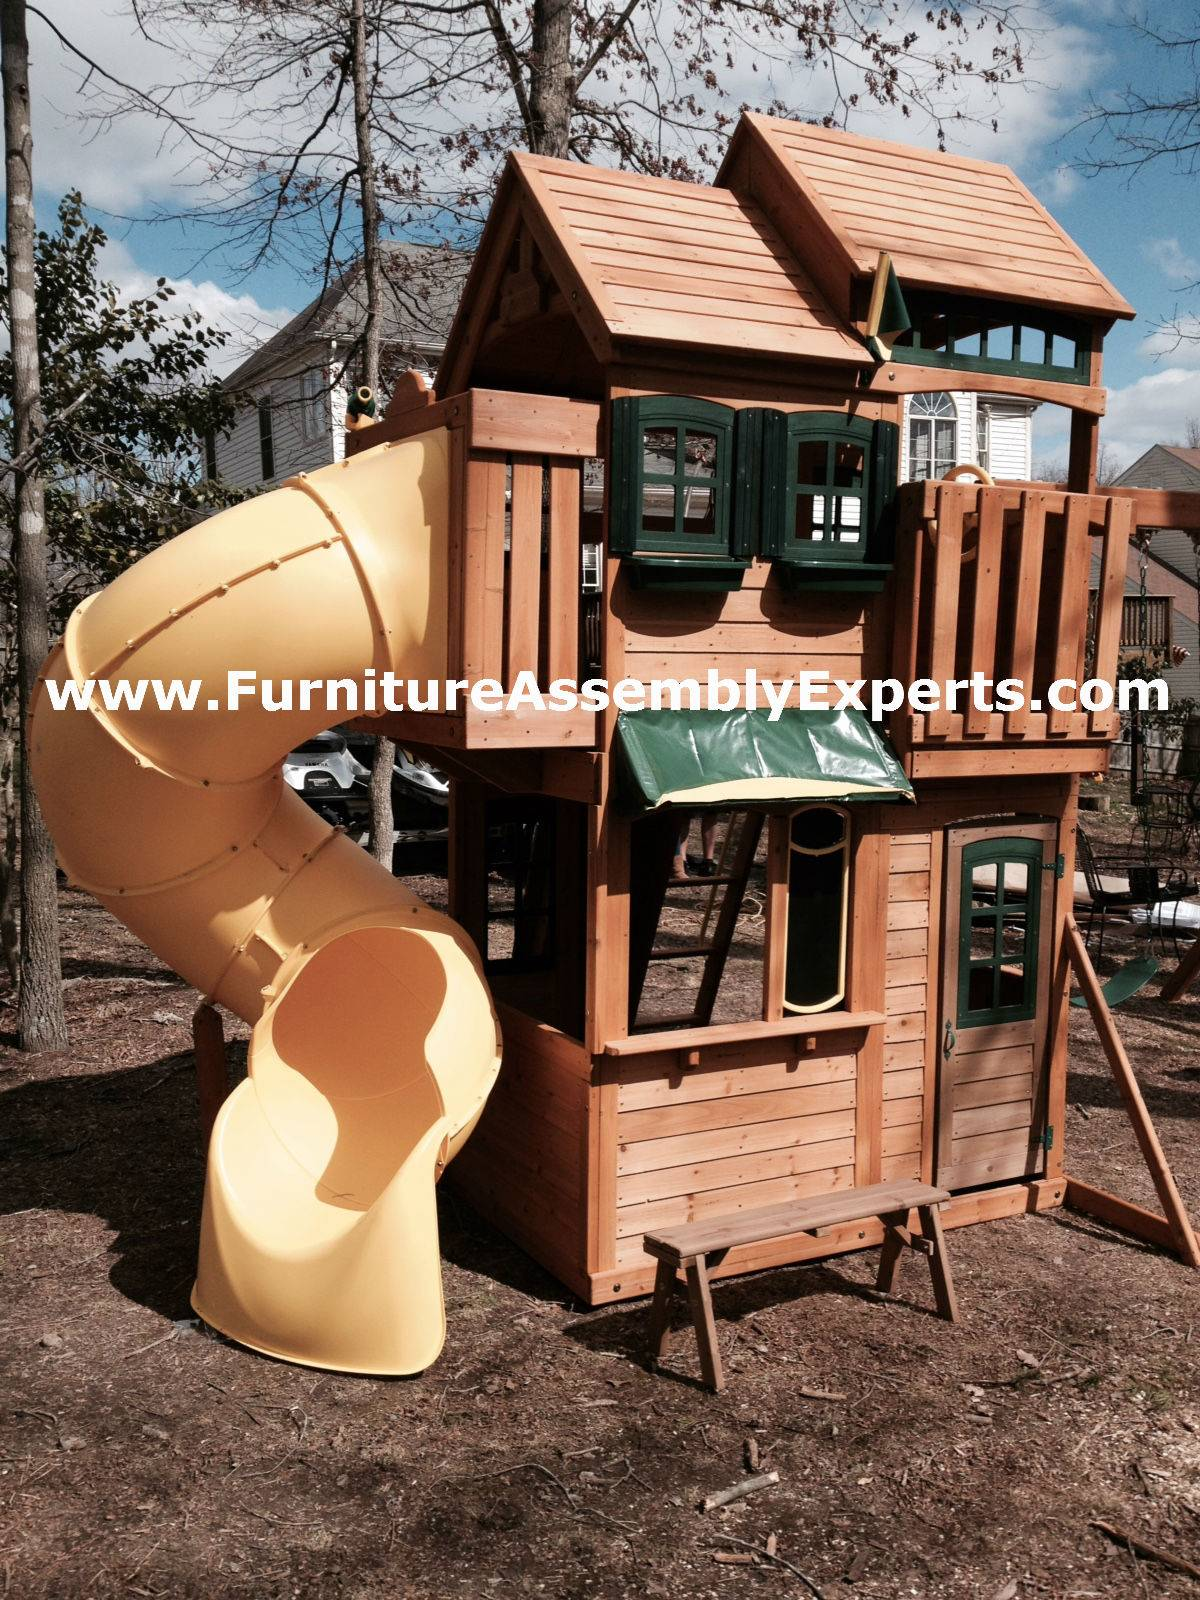 backyard playset assembly service in temple hills MD